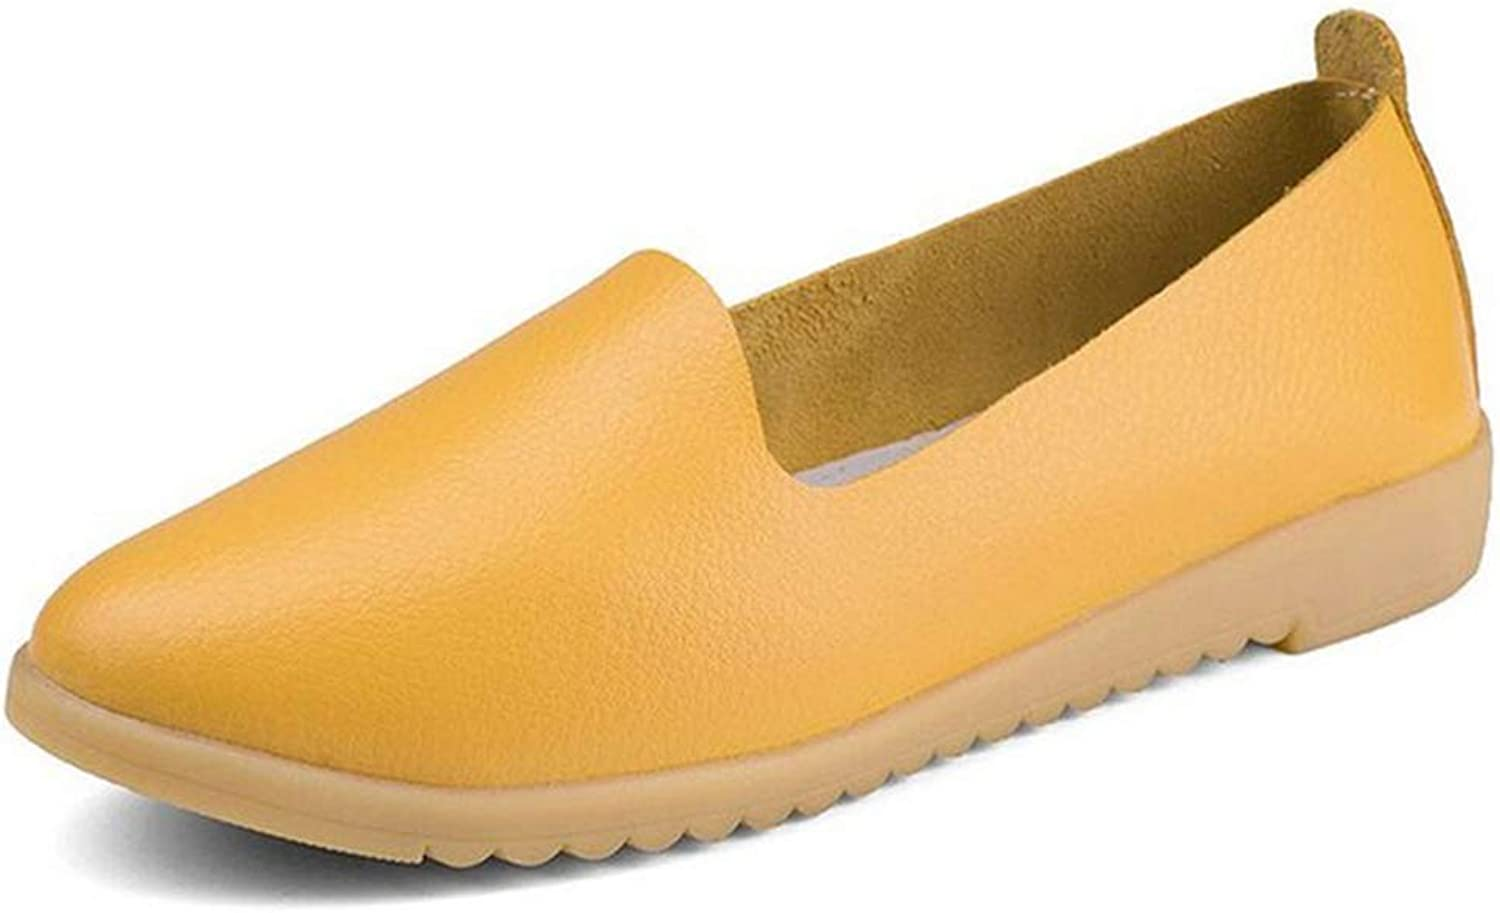 JOYBI Women's Penny Lafers Pointed Toe Non-Slip Thick Rubber Sole Simple Style Lightweight Moccasins Soft Comfort Walking Office Casual Flats Sneakers